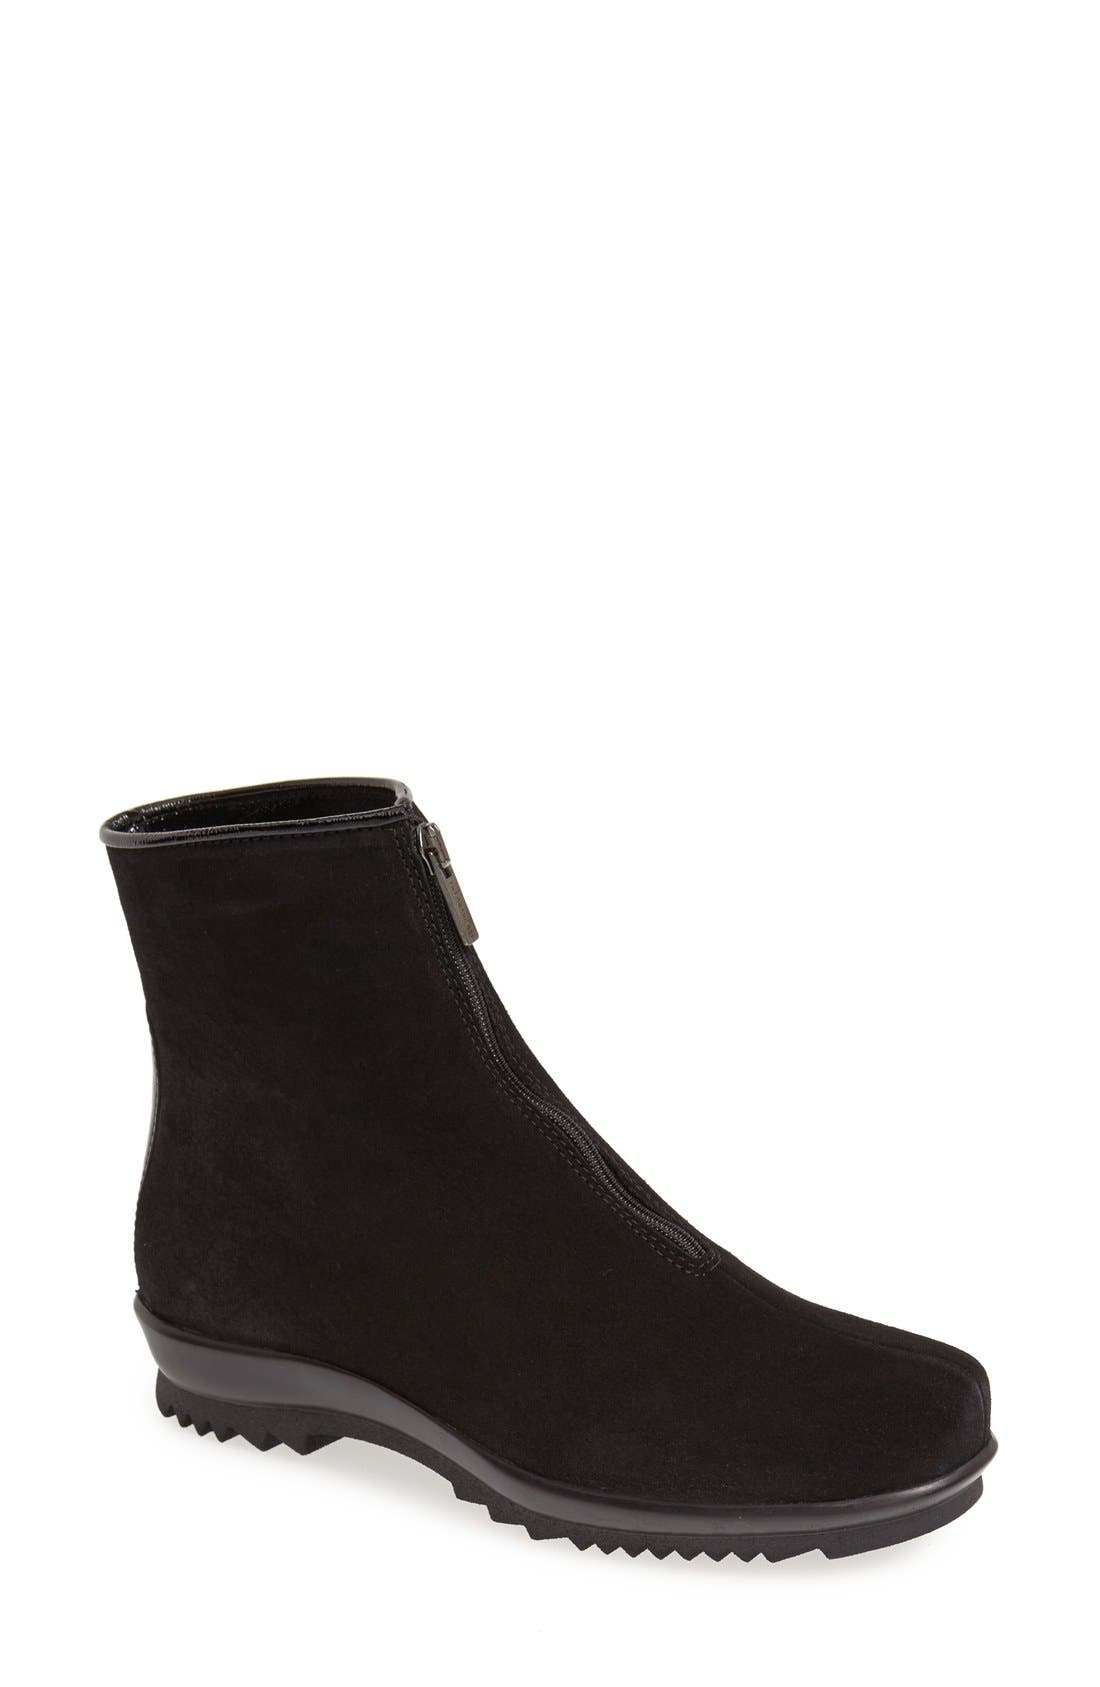 'Tiana' Weatherproof Boot,                         Main,                         color, Black